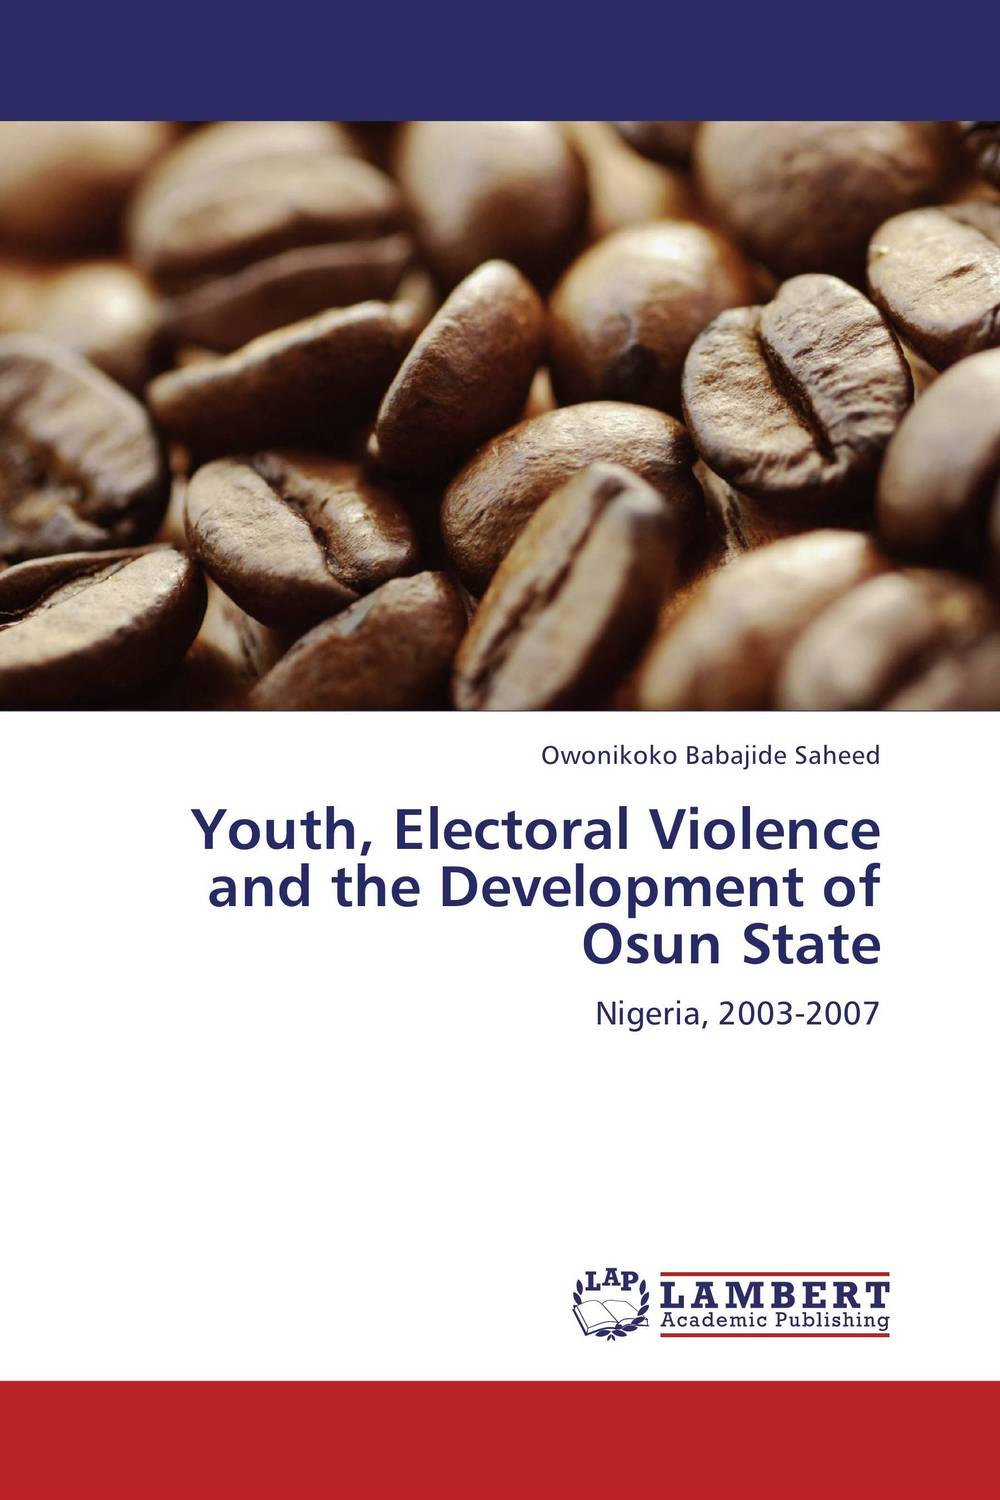 Youth, Electoral Violence and the Development of Osun State helina befekadu the nature and effect of emotional violence